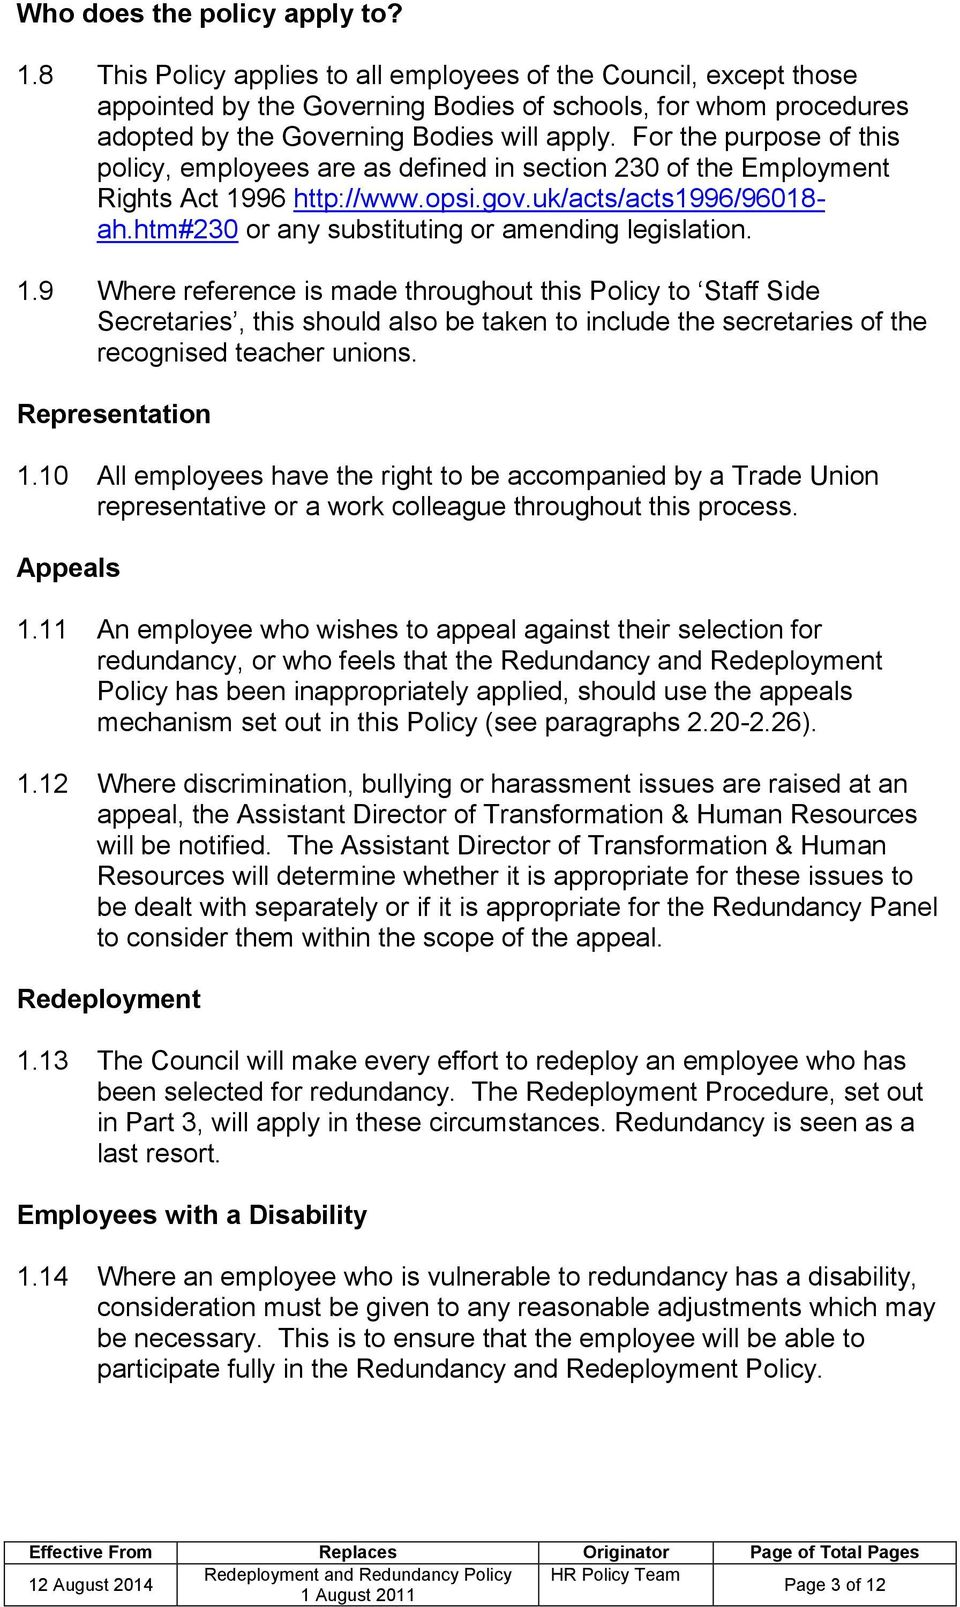 For the purpose of this policy, employees are as defined in section 230 of the Employment Rights Act 1996 http://www.opsi.gov.uk/acts/acts1996/96018- ah.